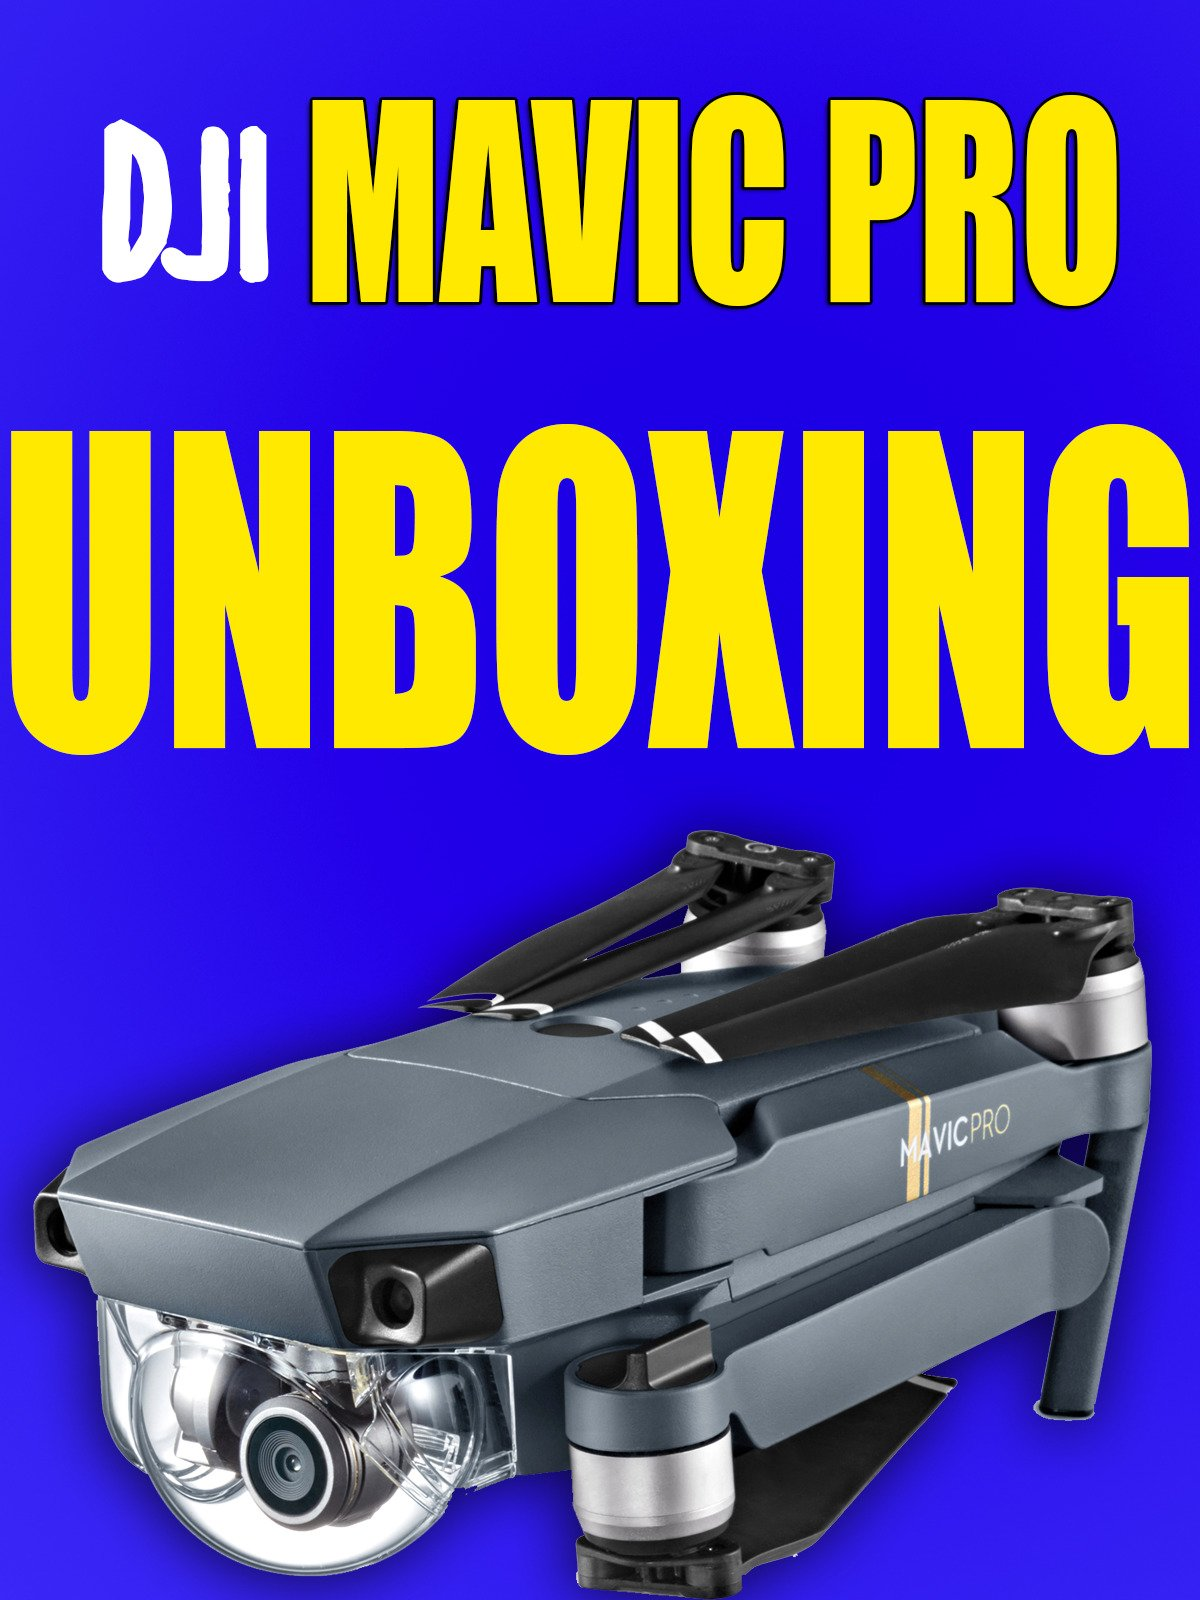 Clip: DJi Mavic Pro - UnBoxing on Amazon Prime Video UK